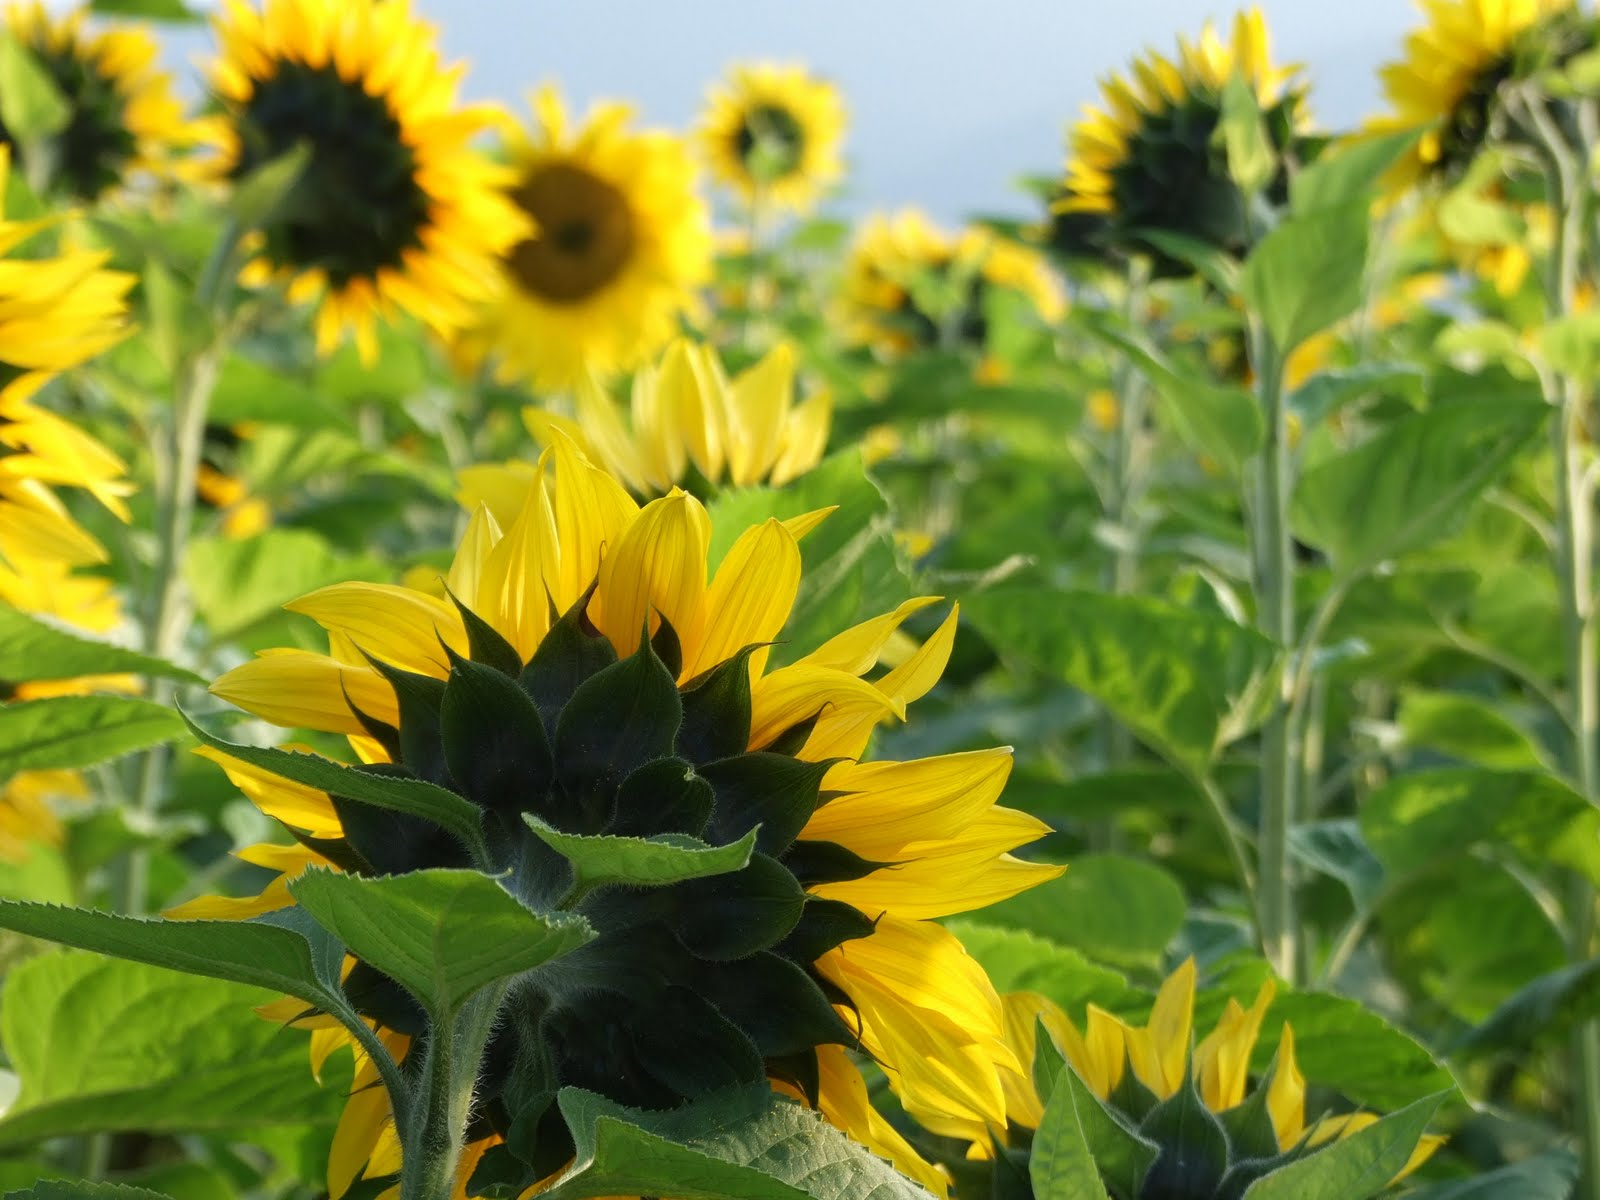 william blake ah sunflower Songs of experience-the sunflower ah, sunflower weary of time, who countest the steps of the sun, seeking after that sweet golden clime where the traveller's.